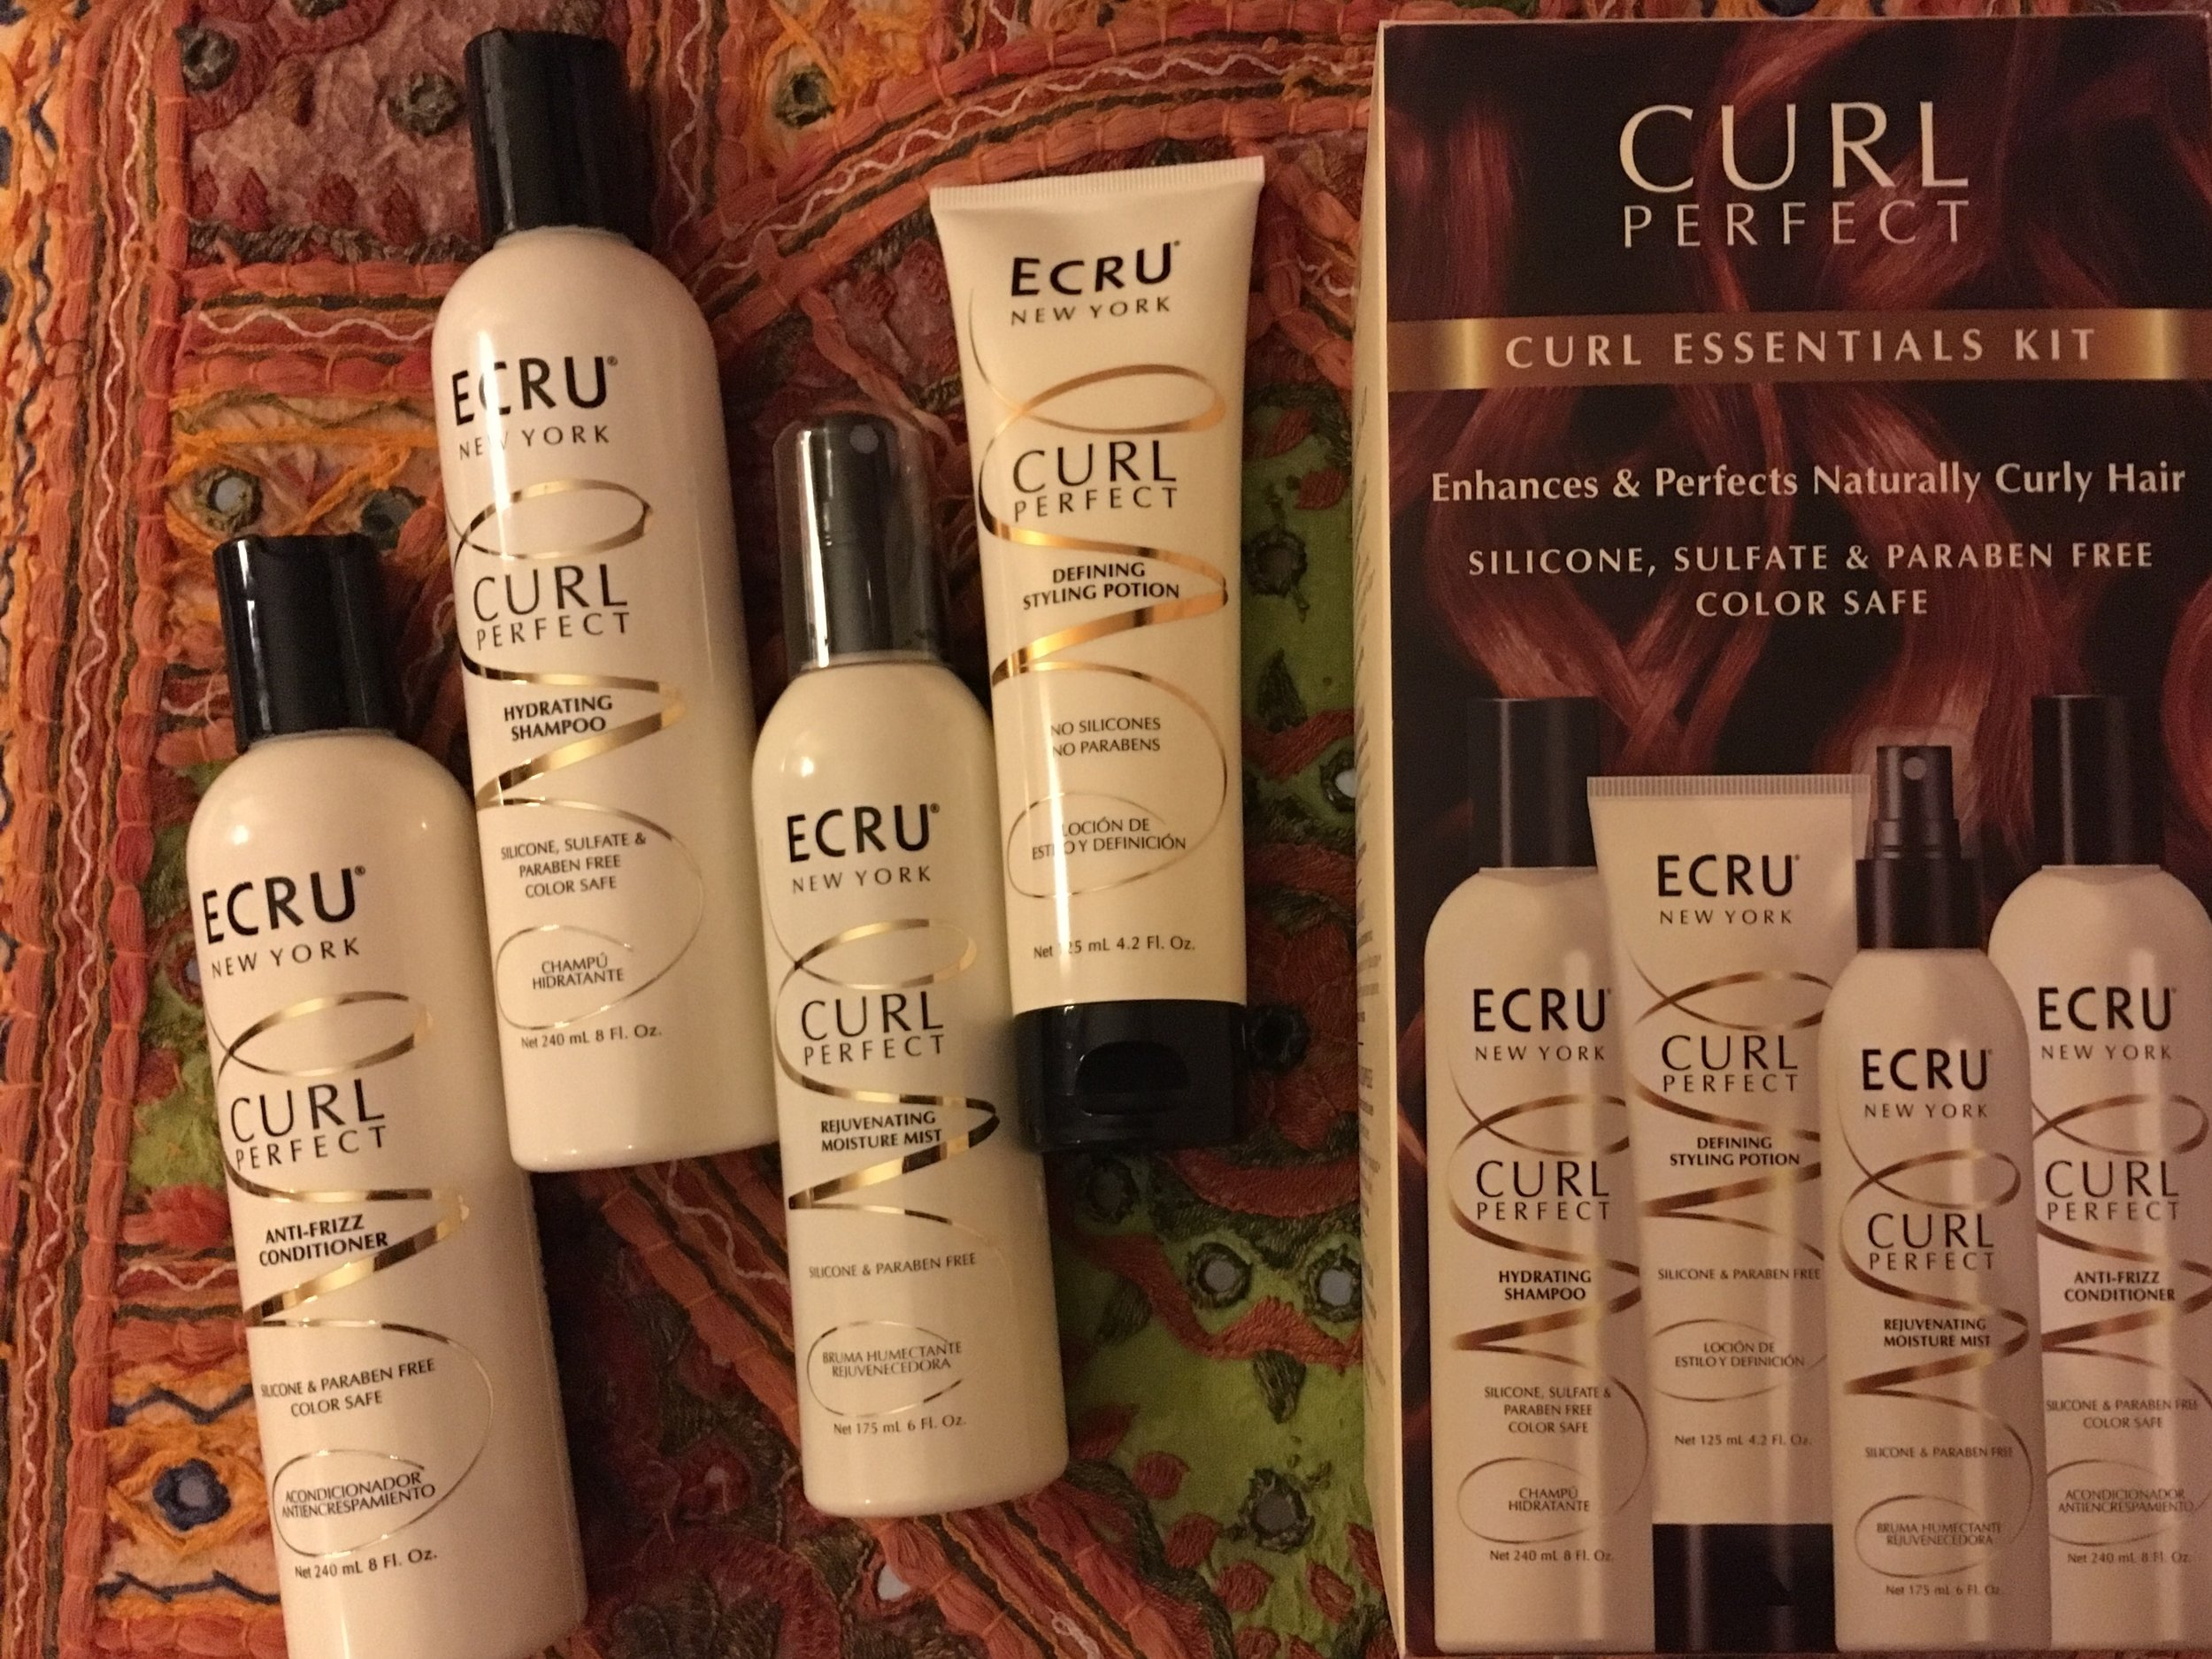 Trying out the  Ecru New York  Curl Essentials Kit!